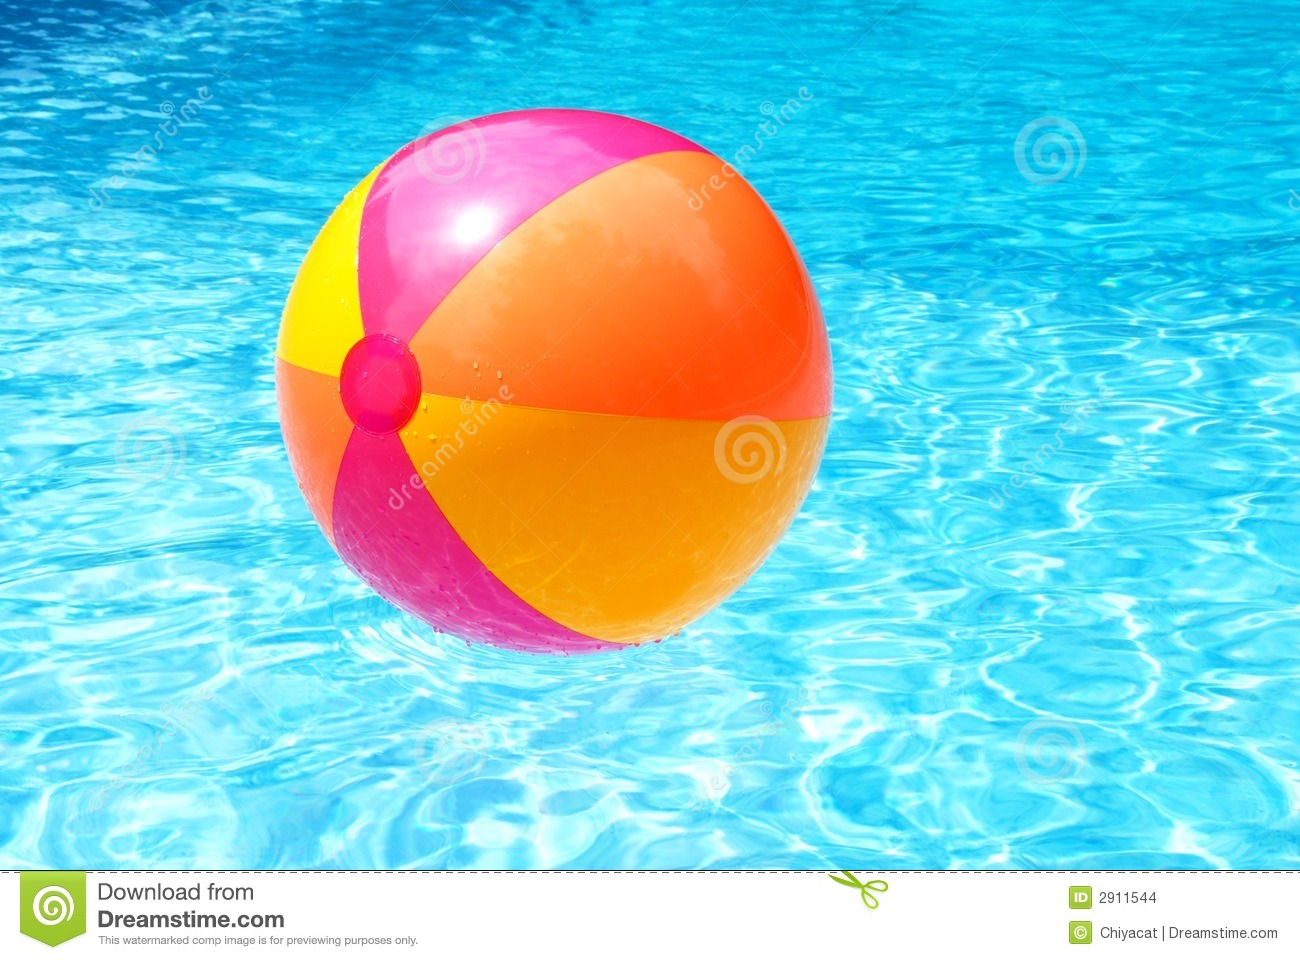 Pool Water With Beach Ball beach ball swimming pool stock photos, images, & pictures - 1,059